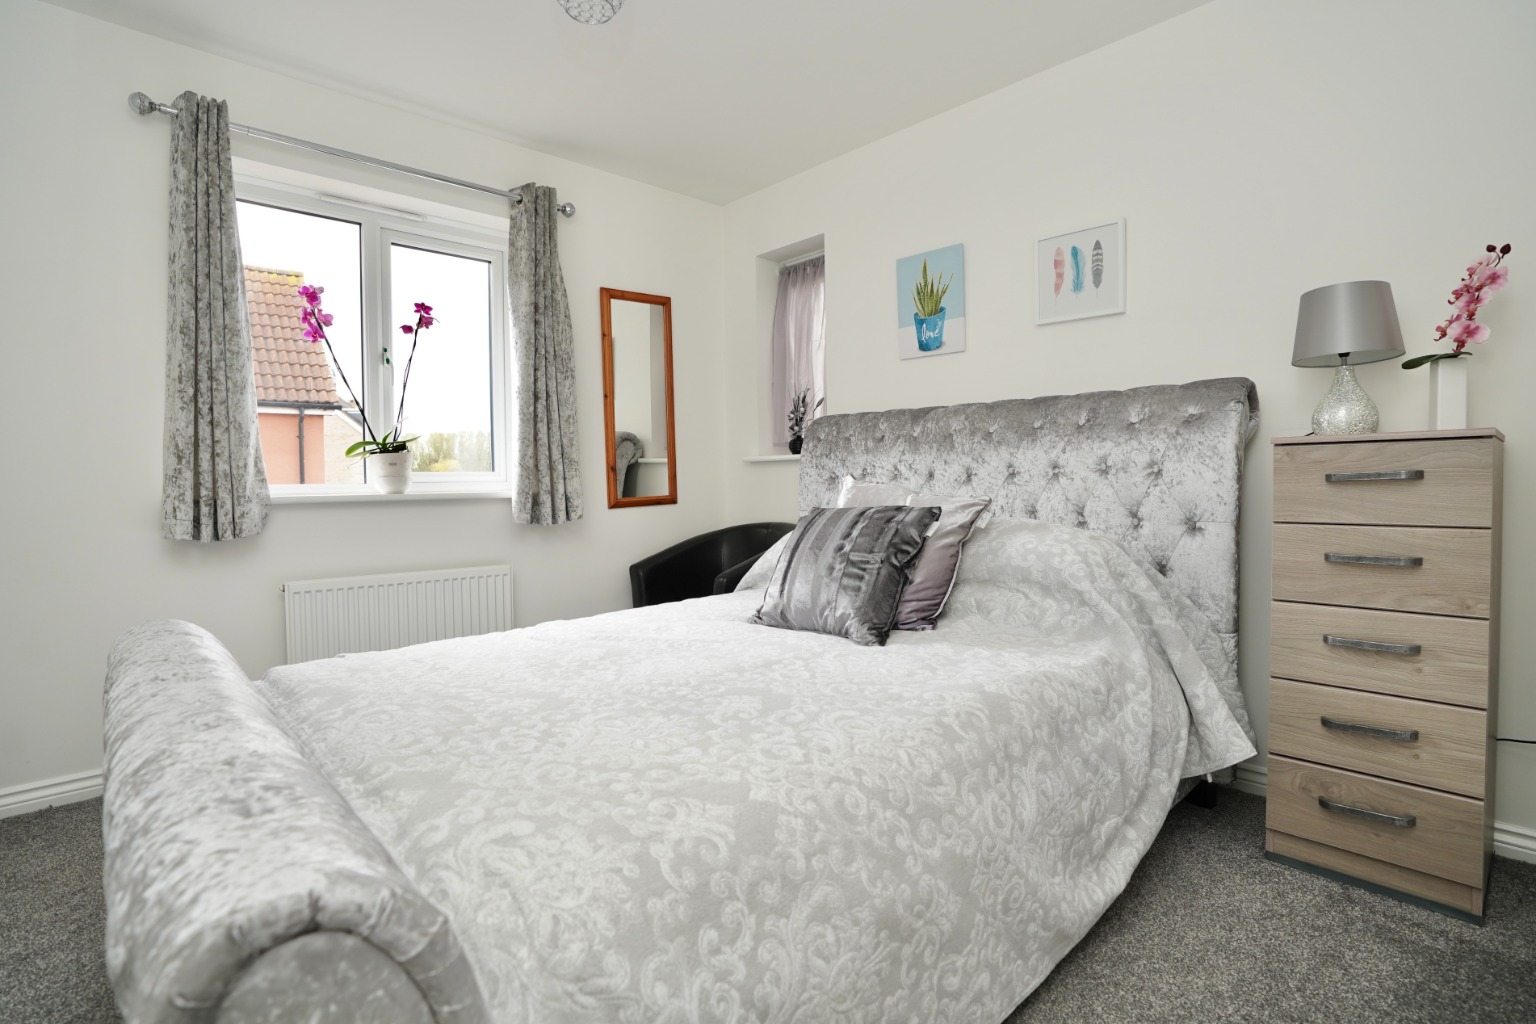 4 bed detached house for sale in Daffodil Close, St. Neots  - Property Image 8